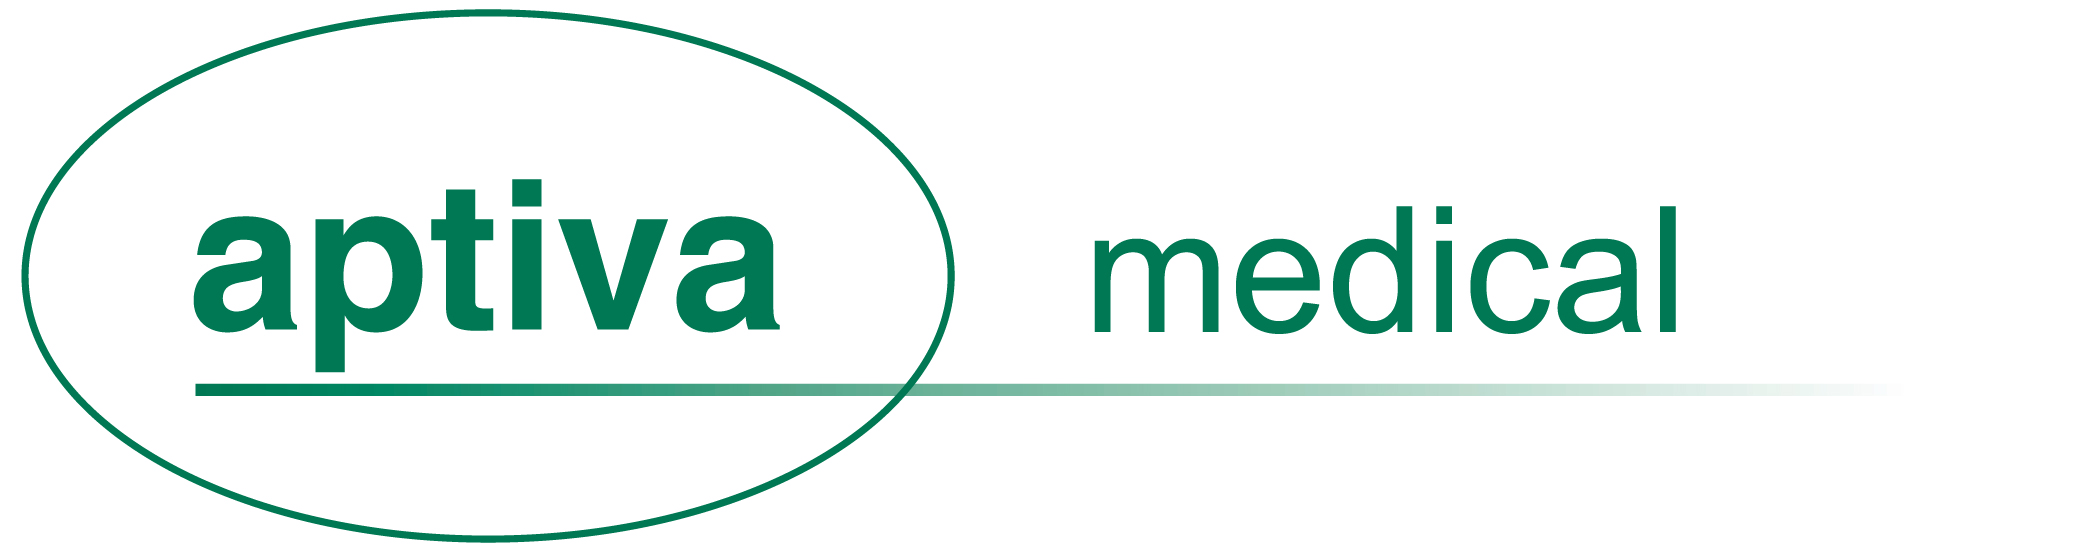 aptiva medical-logo